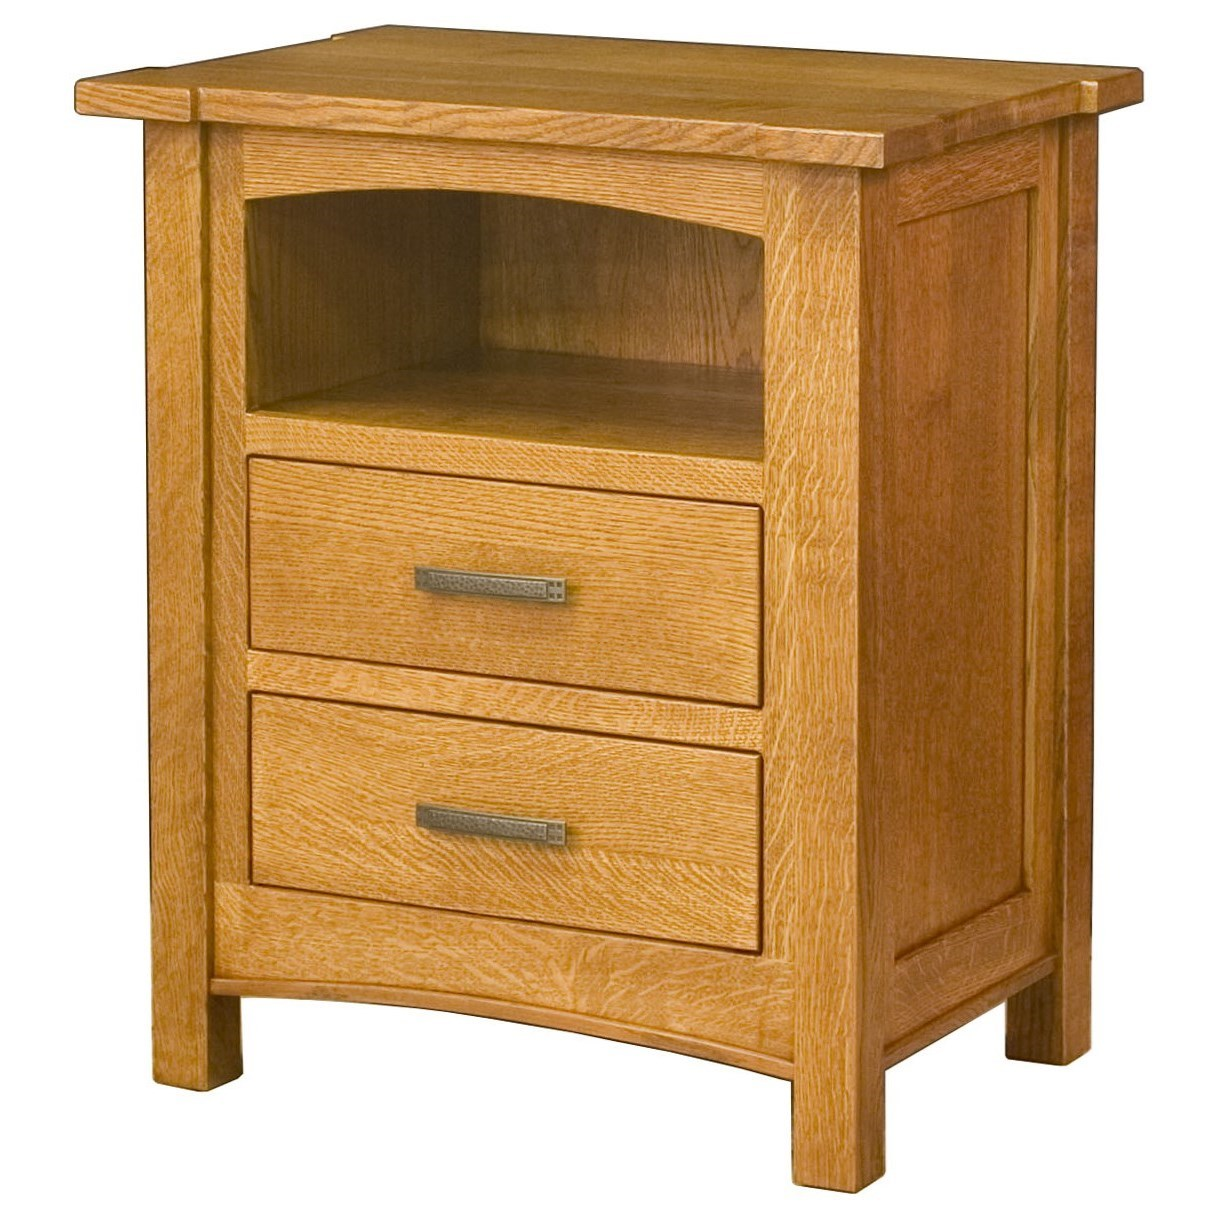 2 Drawer Bedside Chest